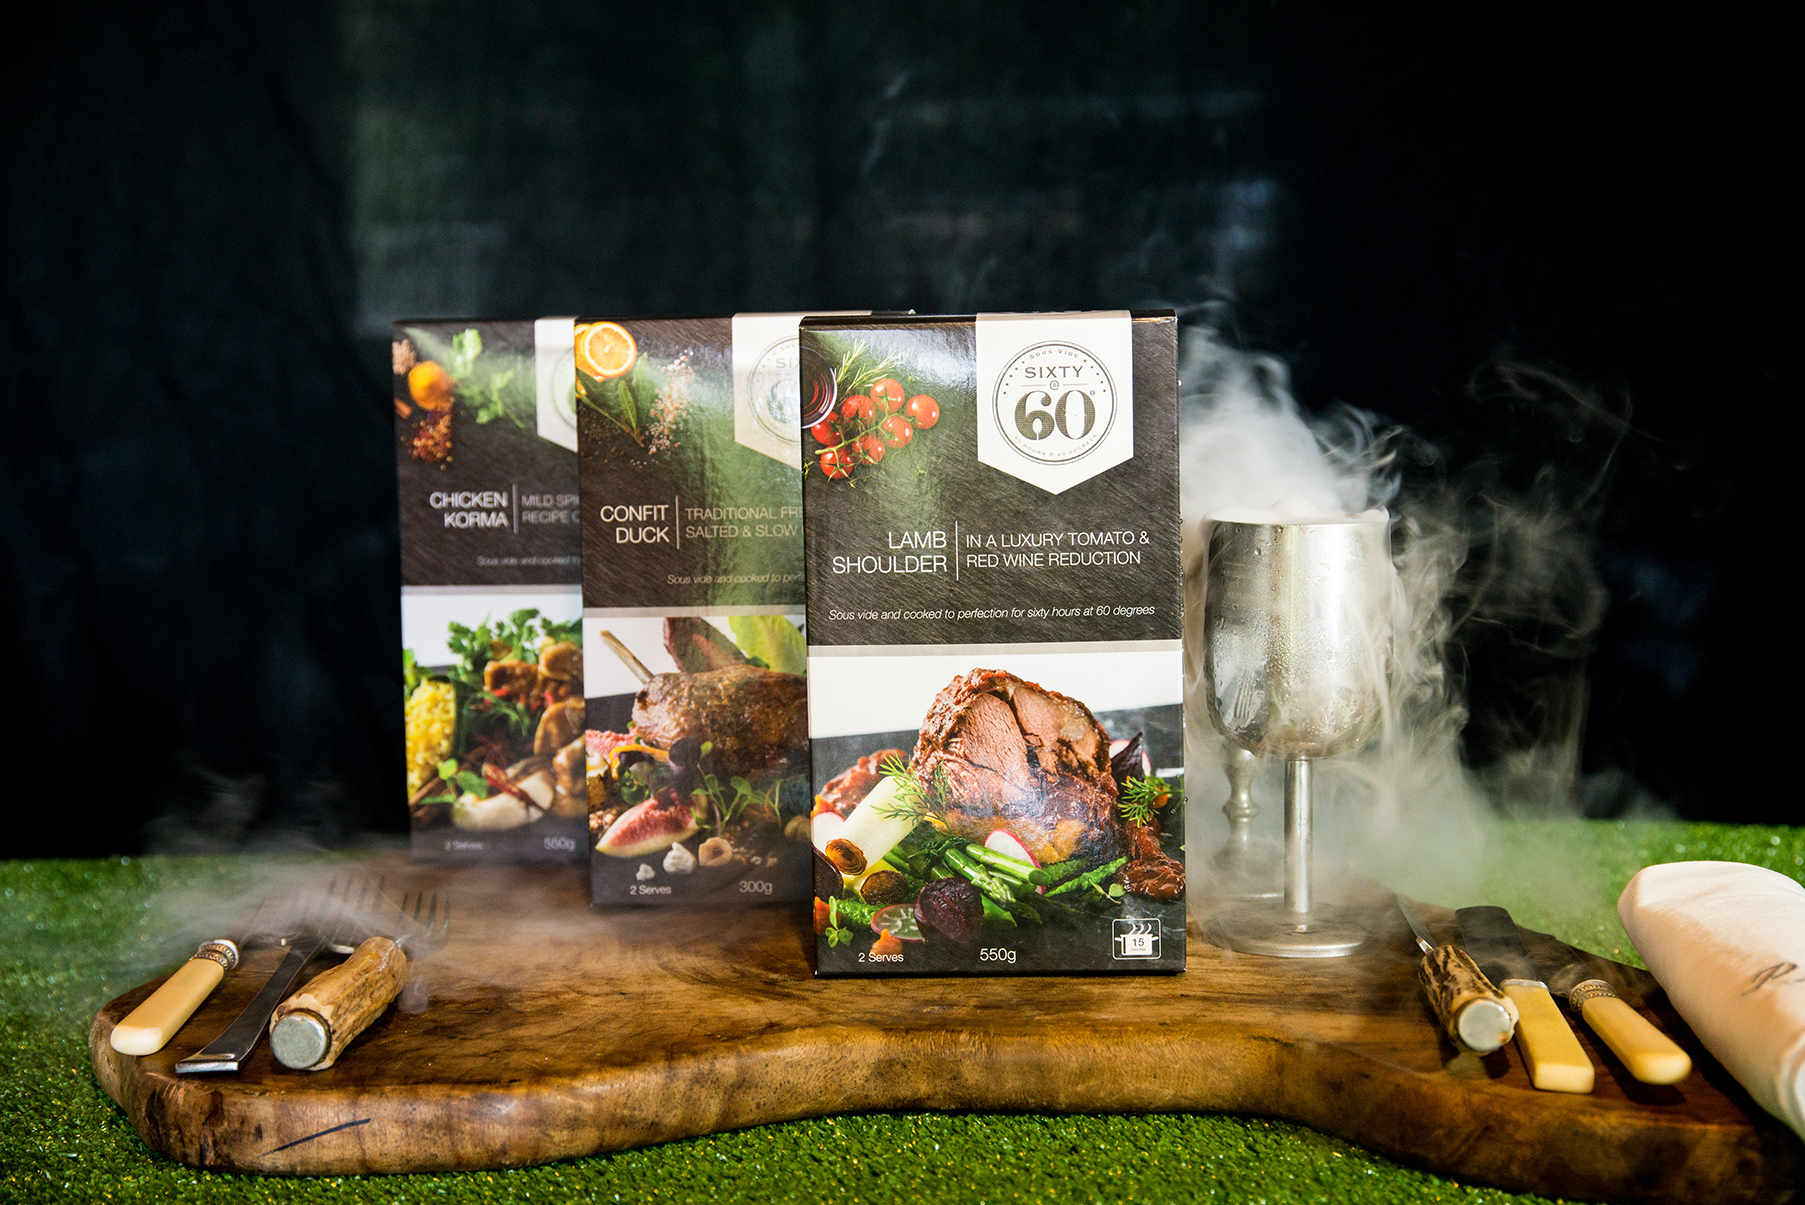 The Sixty@60 range of gourmet ready-meals